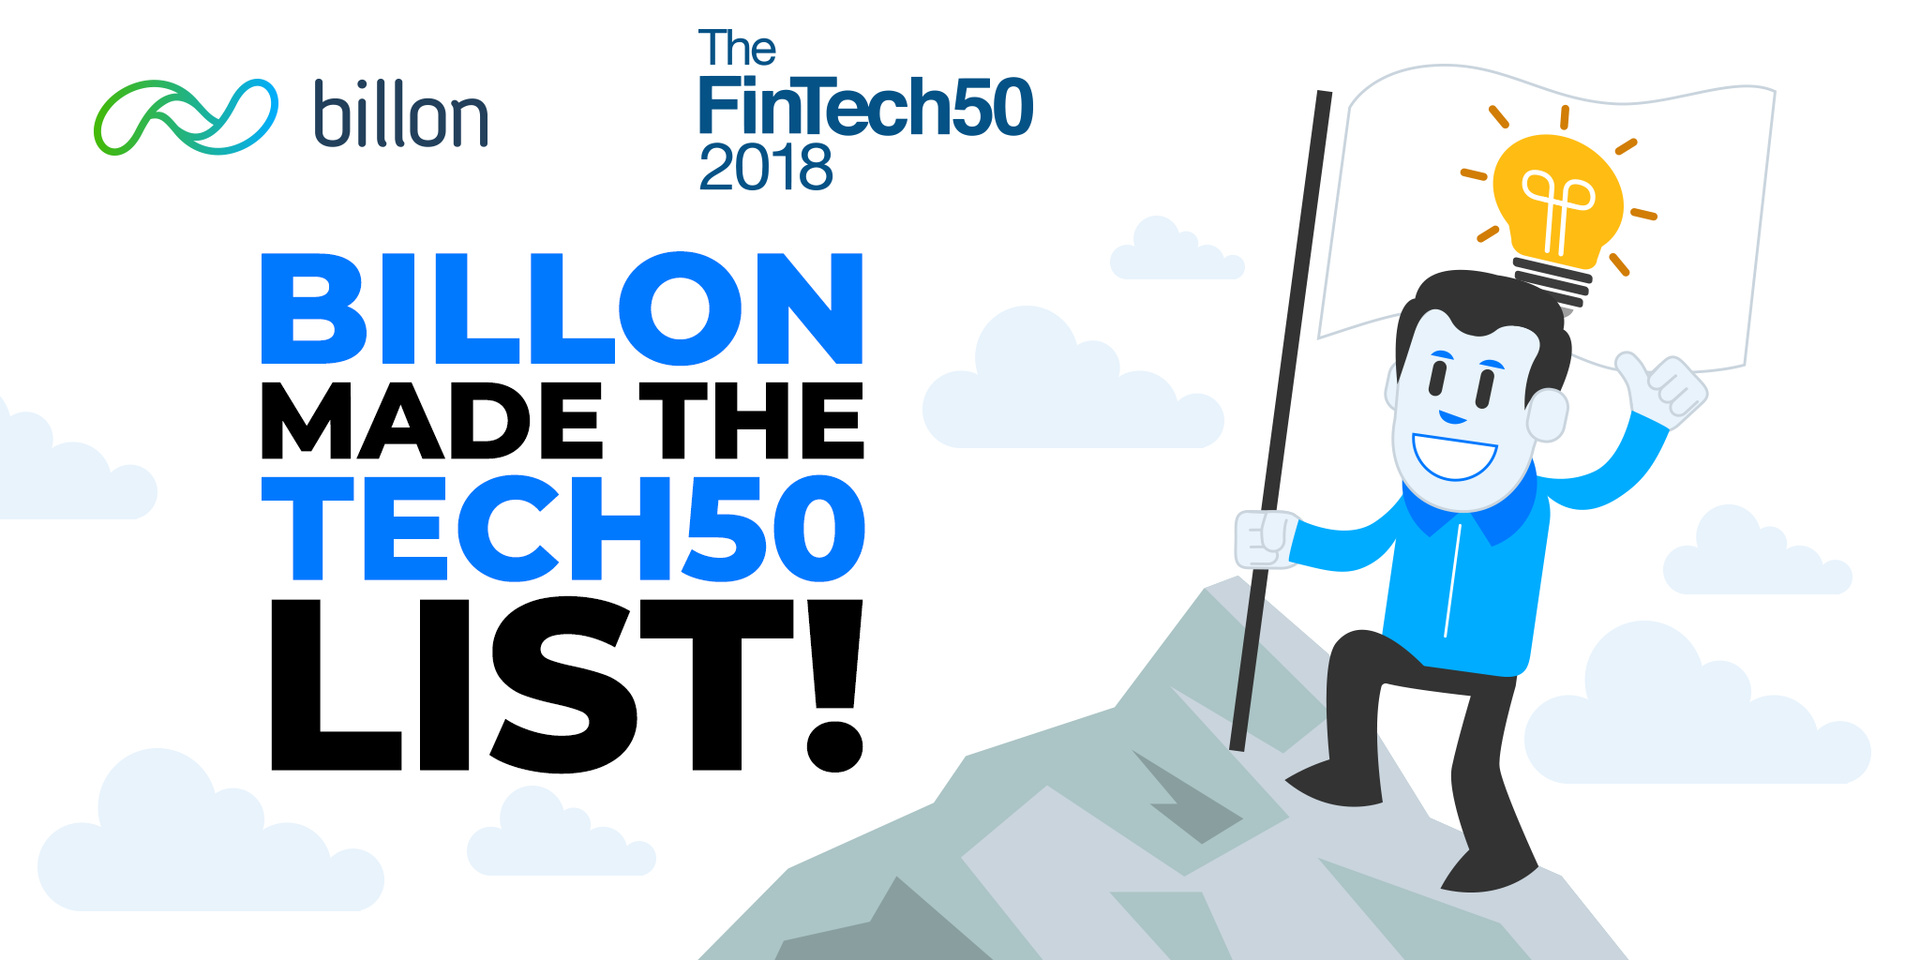 Billon is first Polish company to feature on Fintech50